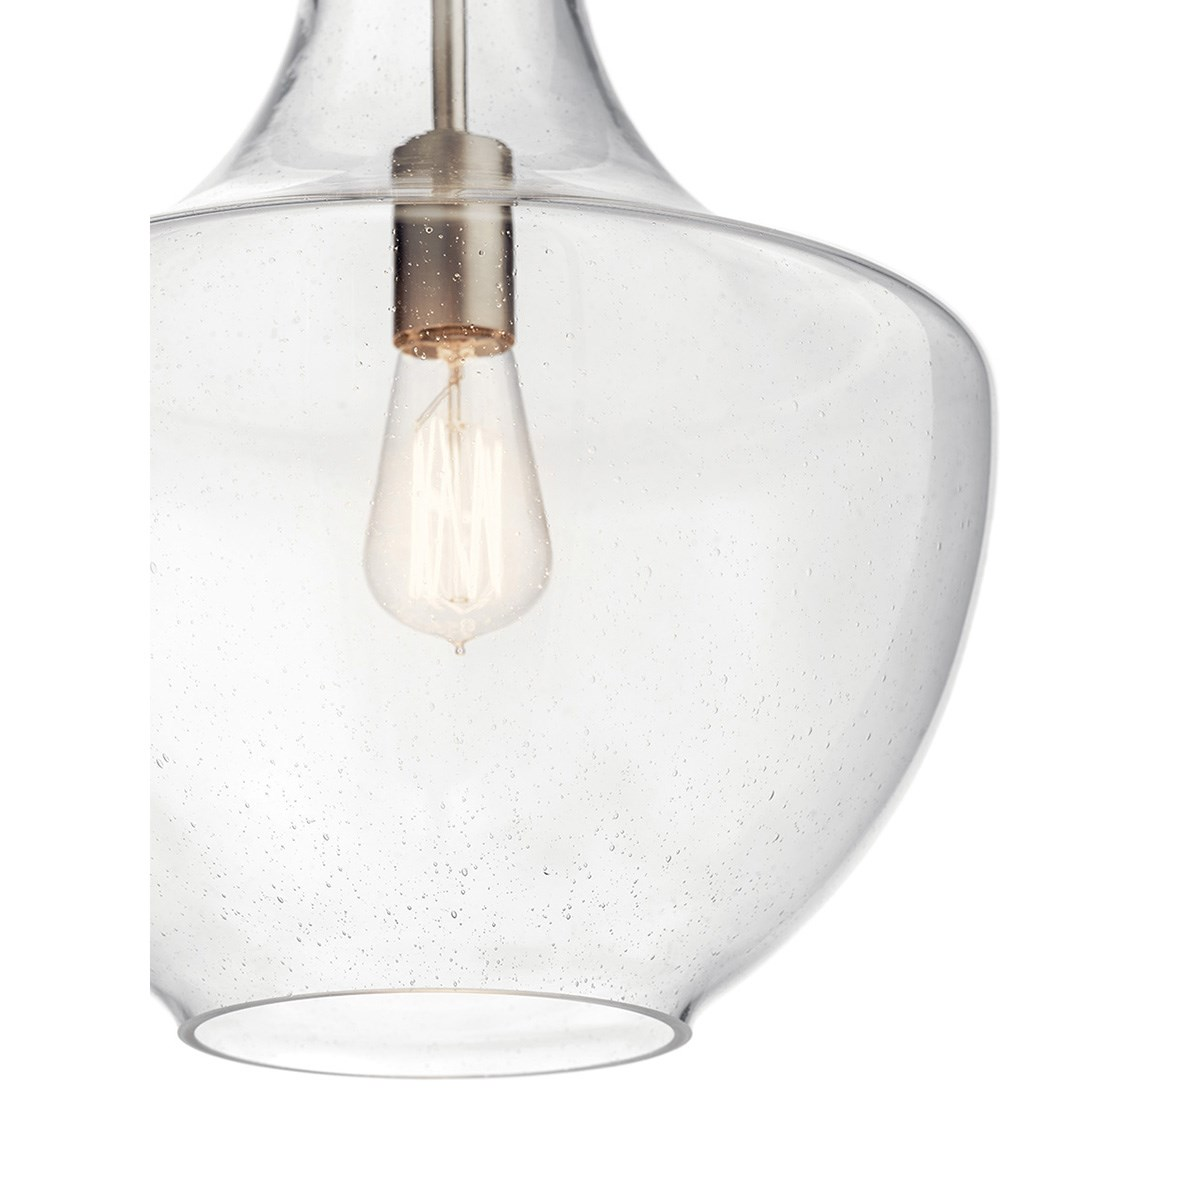 Everly 19 75 1 Light Lamp Shape Pendant Clear Seeded Glass Brushed Nickel Kichler Lighting